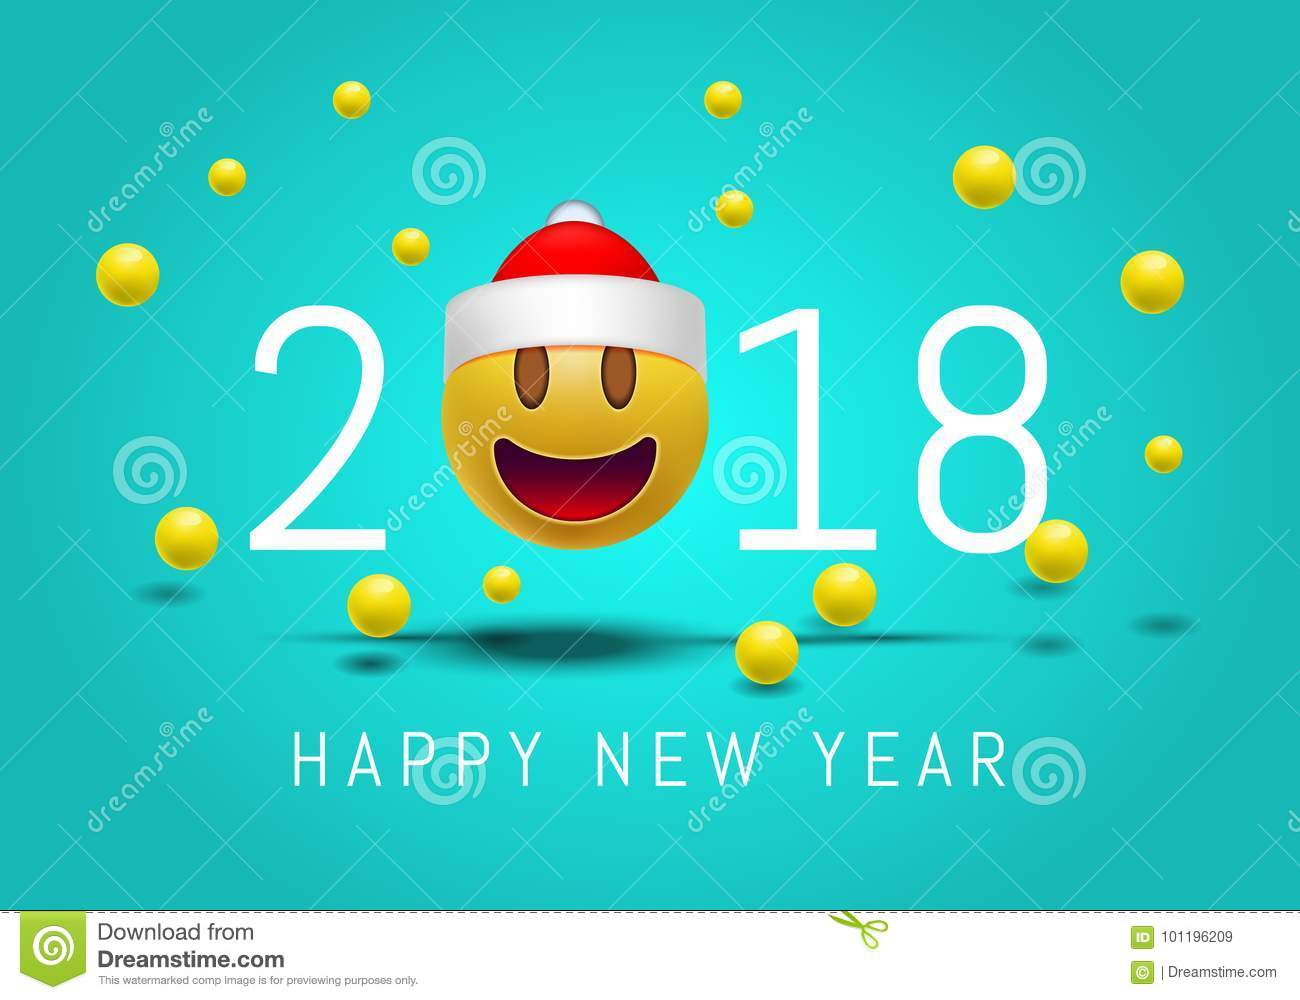 happy new year 2018 with cute smiling emoji face with a santa claus hat 3d